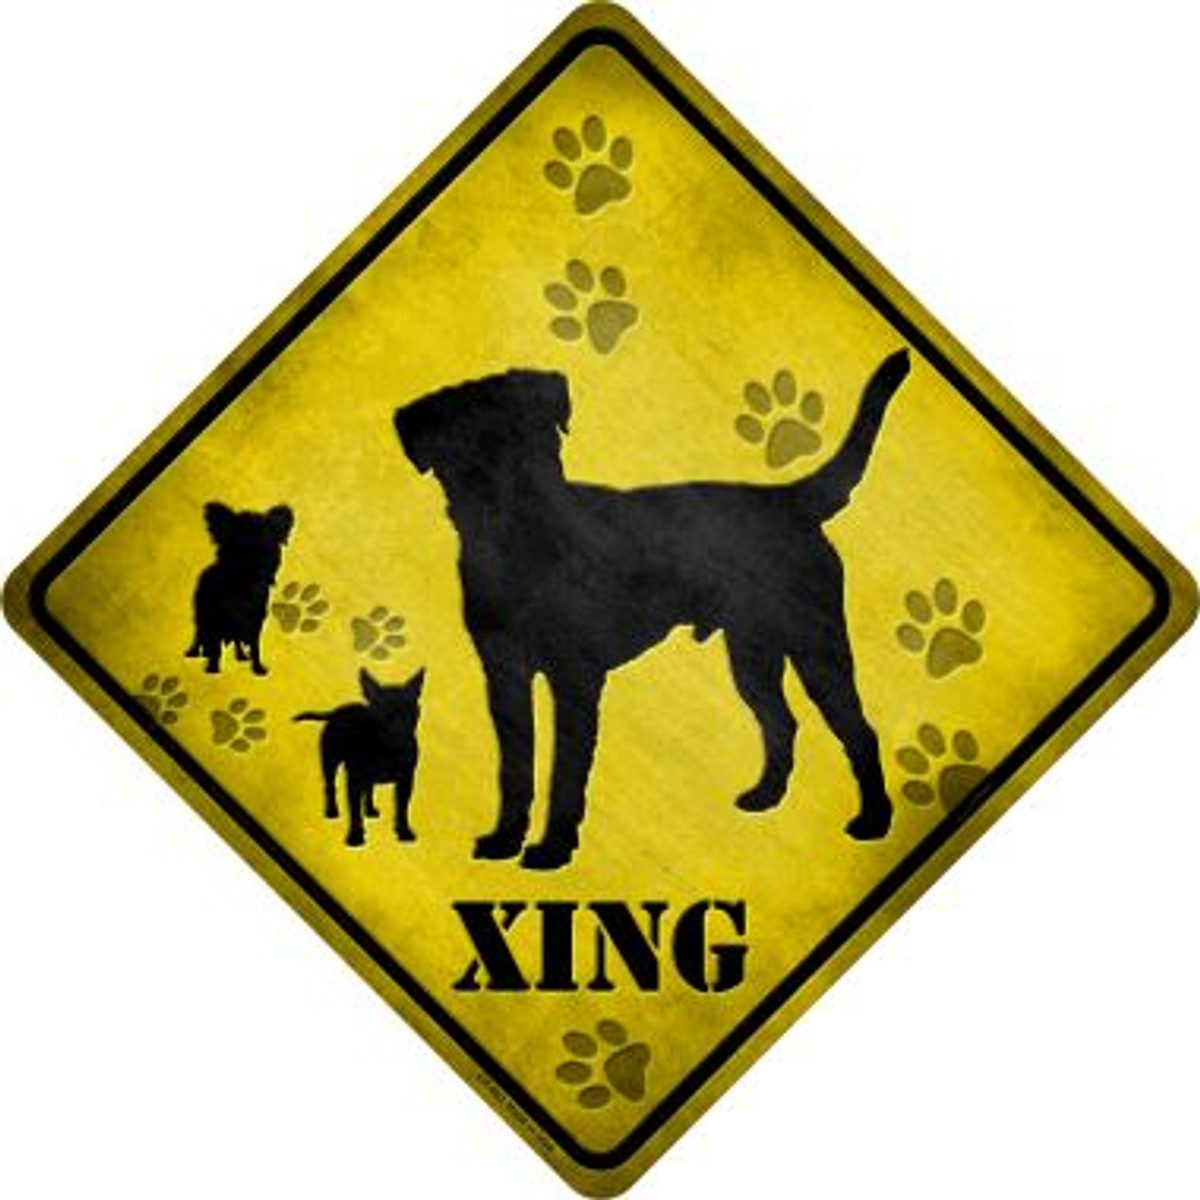 Rottweiler Dog Crossing Xing Sign New